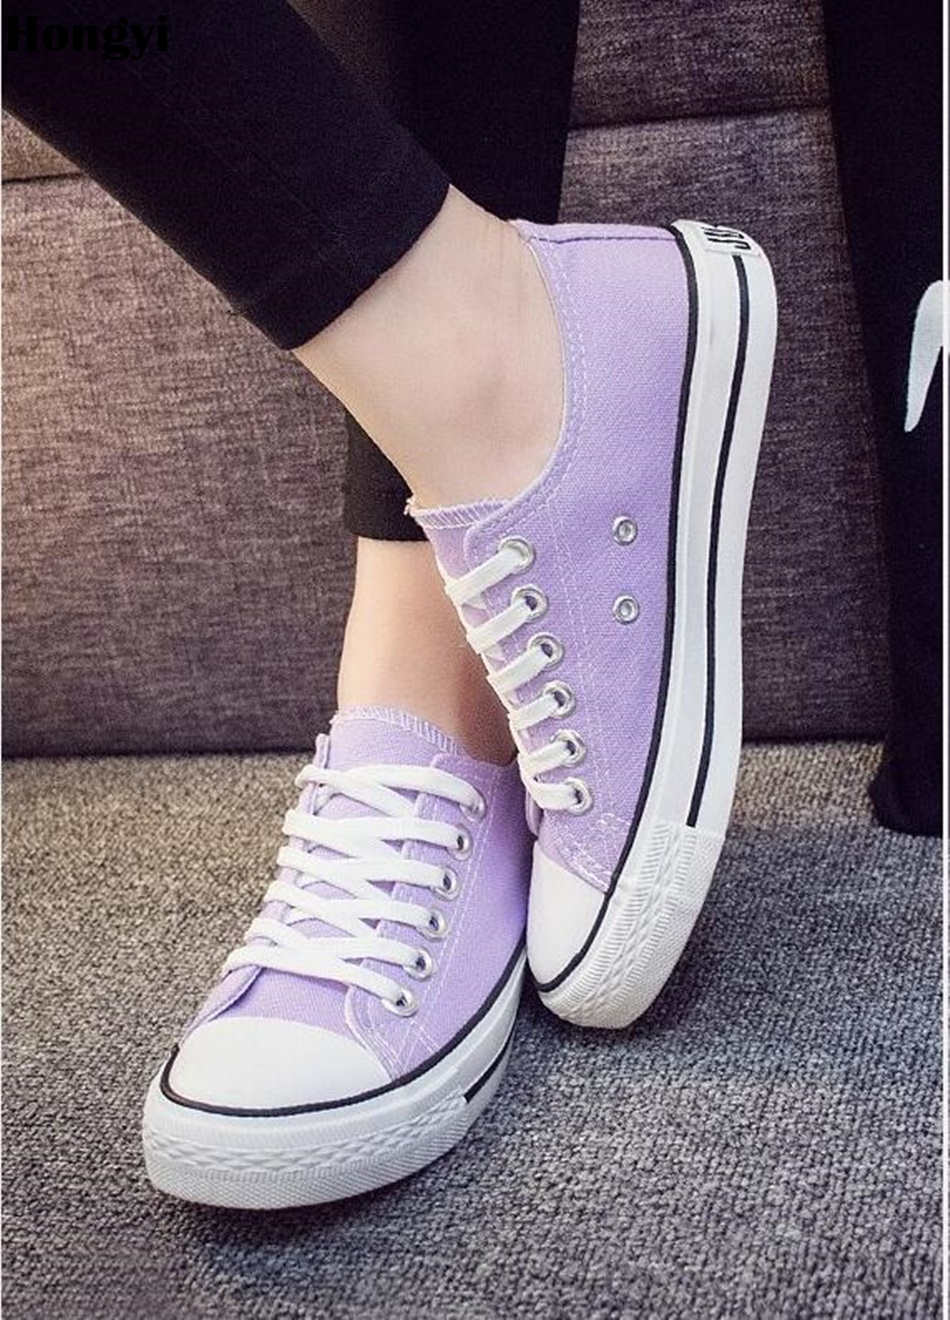 Canvas Shoes Women Lace Up Casual Shoes Woman Flats White Shoes Candy Color Breathable shoes Ladies Espadrilles Big Size 35-43 2017 new spring autumn men casual shoes breathable black high top lace up canvas shoes espadrilles fashion white men s flats